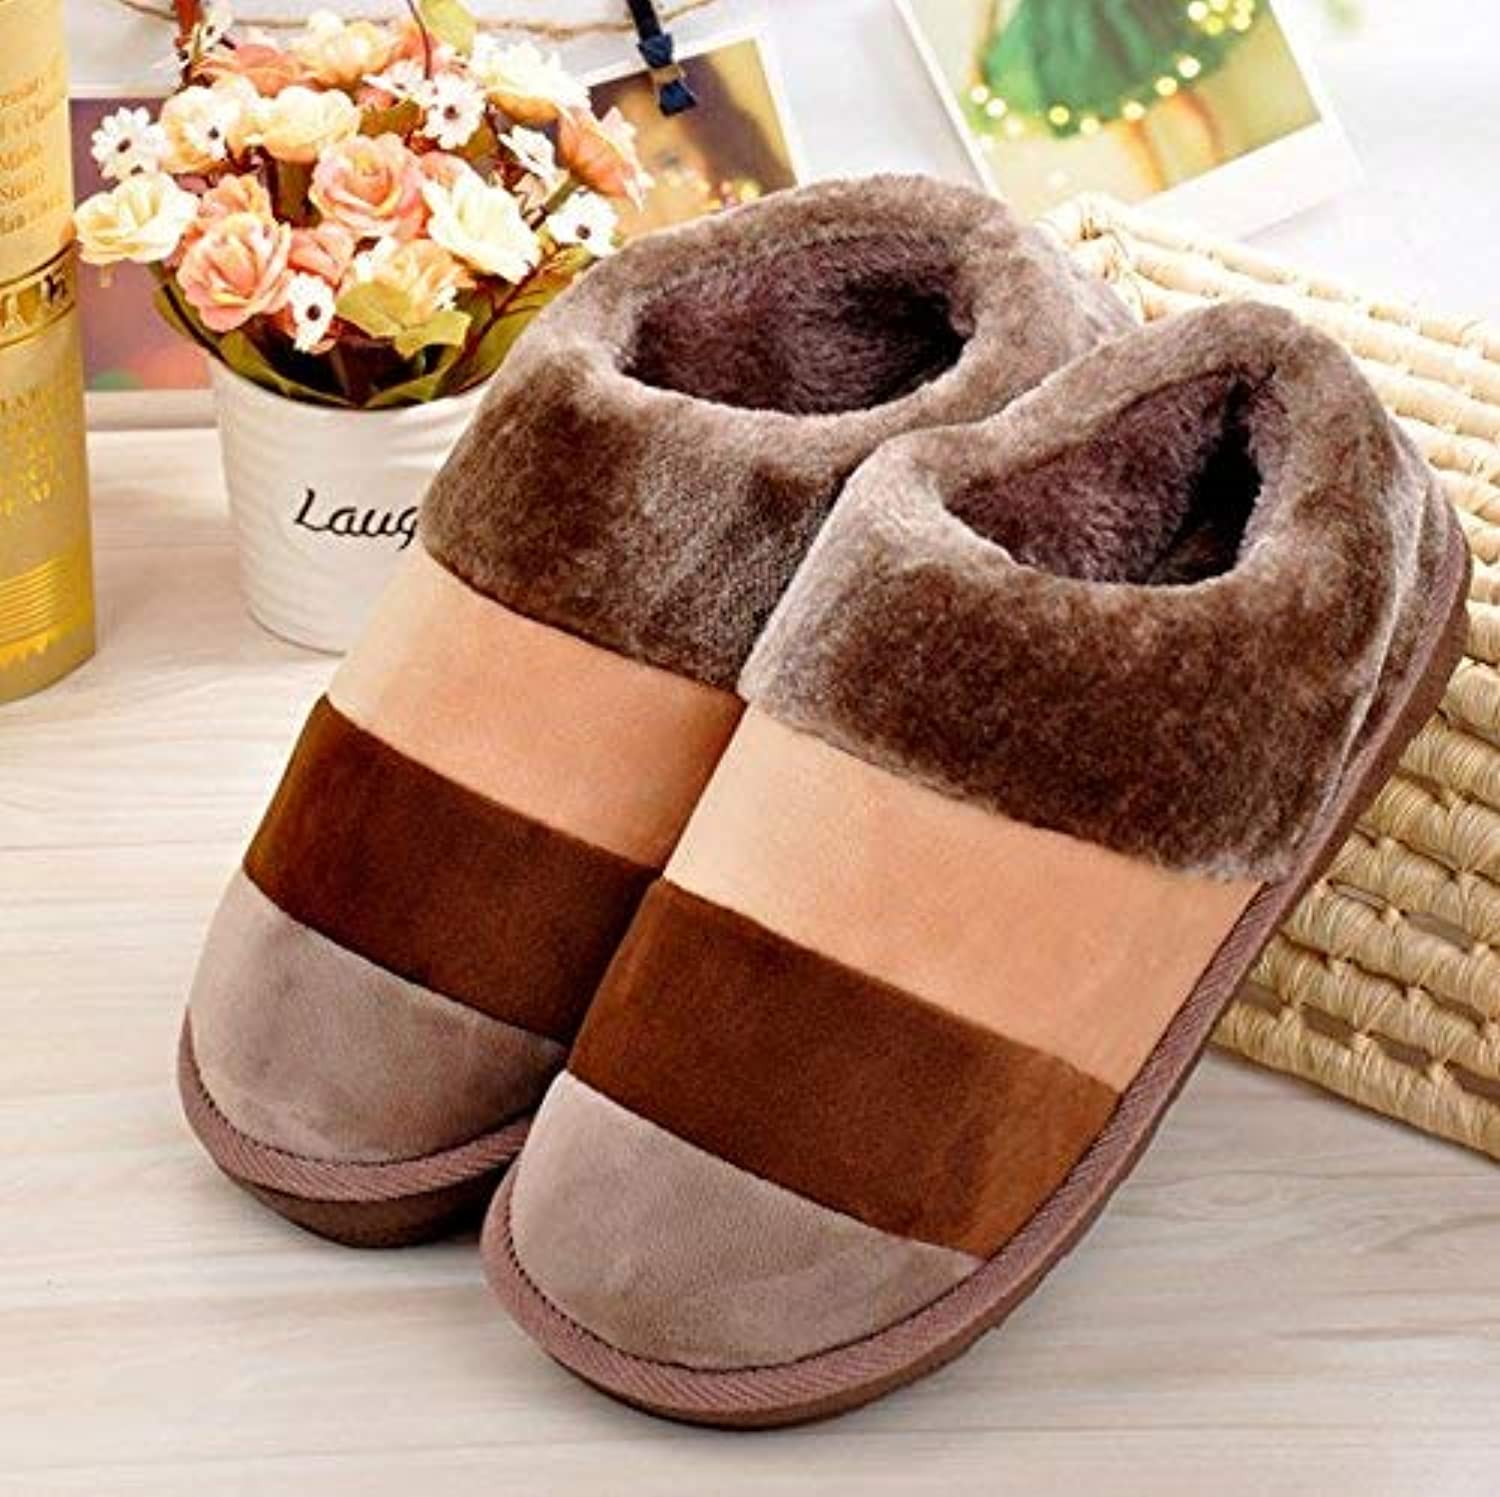 Men 's Home Cotton Slippers Indoor Stripe Brown Keep Warm Casual Slippers Mixed color Personality Quality Large for Men